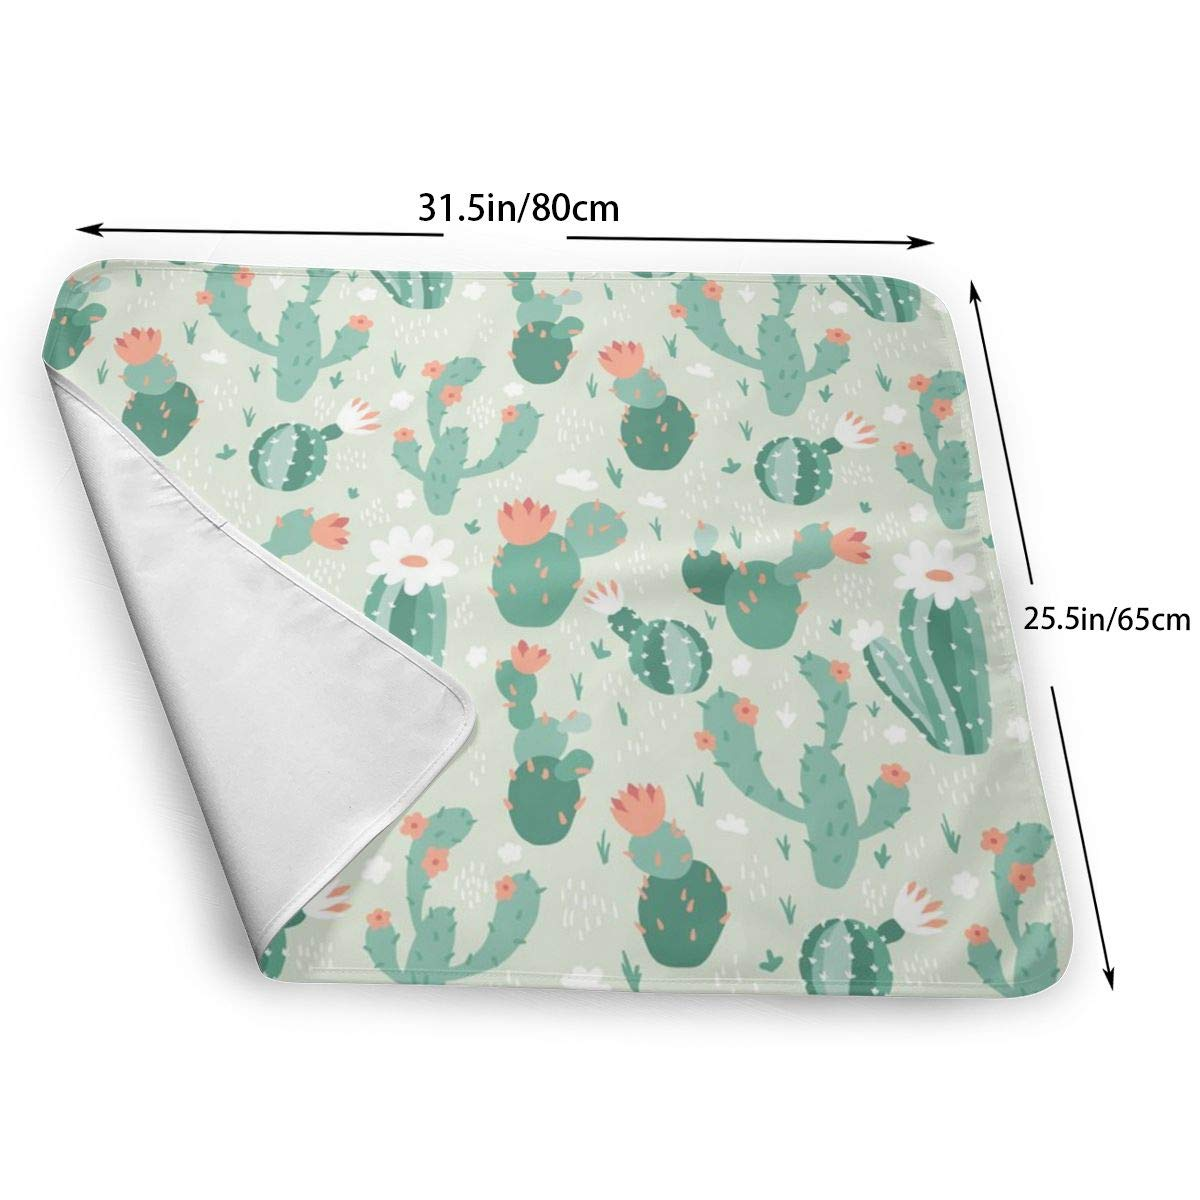 Biggest Changing Mat to Change Diaper Blooming Cacti/_4860 Changing Pad Portable 25.5x31.5